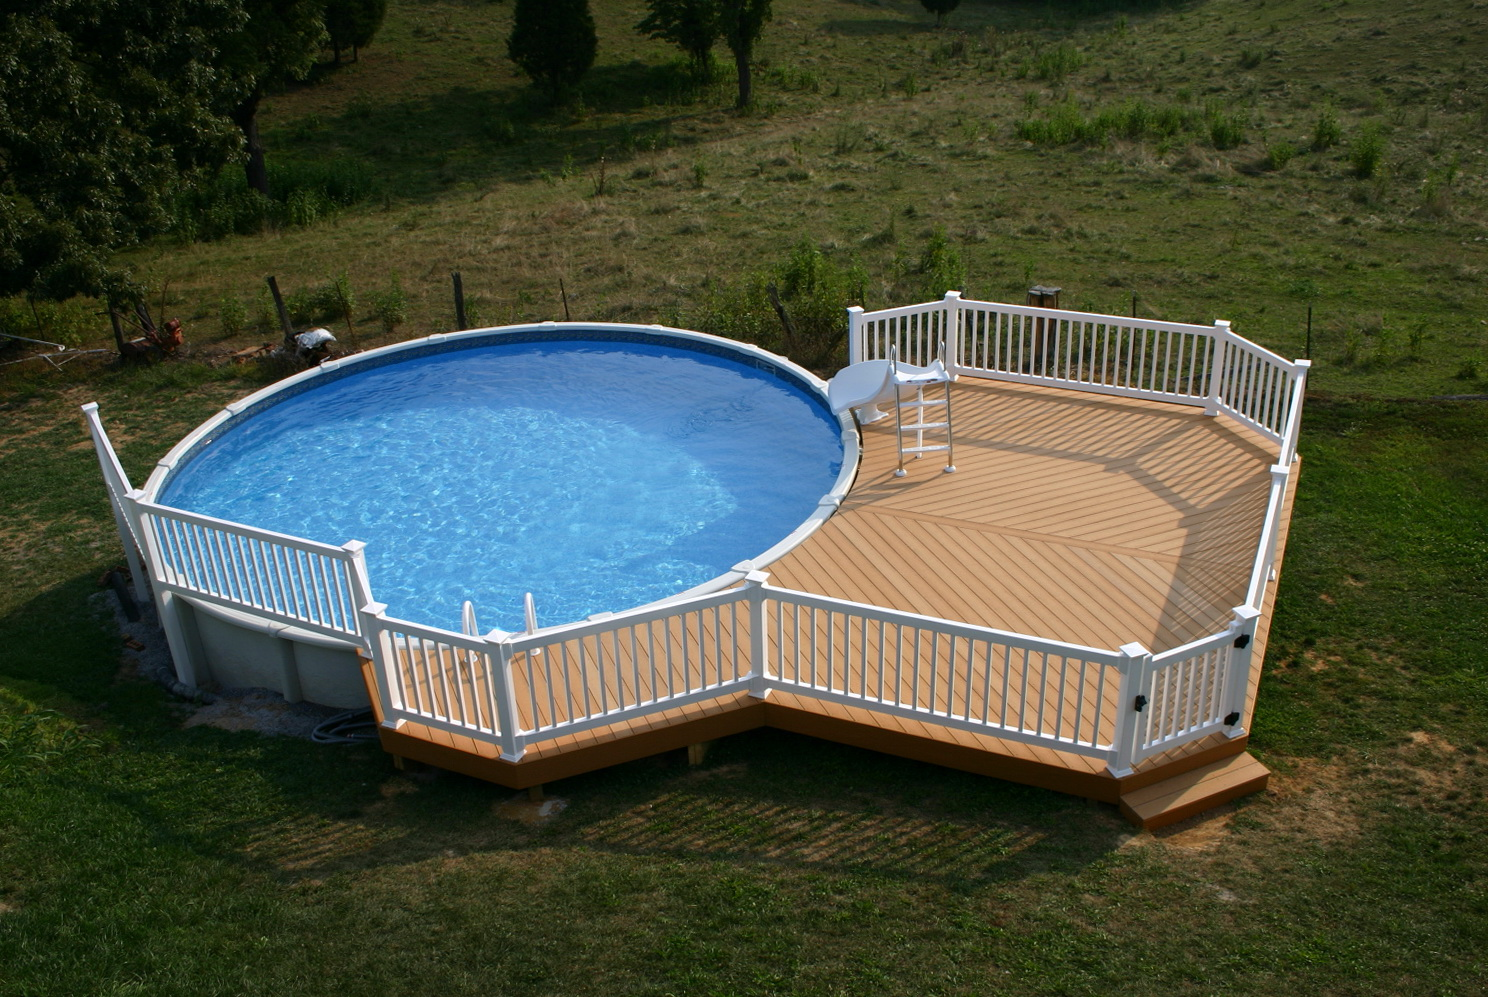 Deck plans for above ground pools on a slope home design for Above ground pool decks video